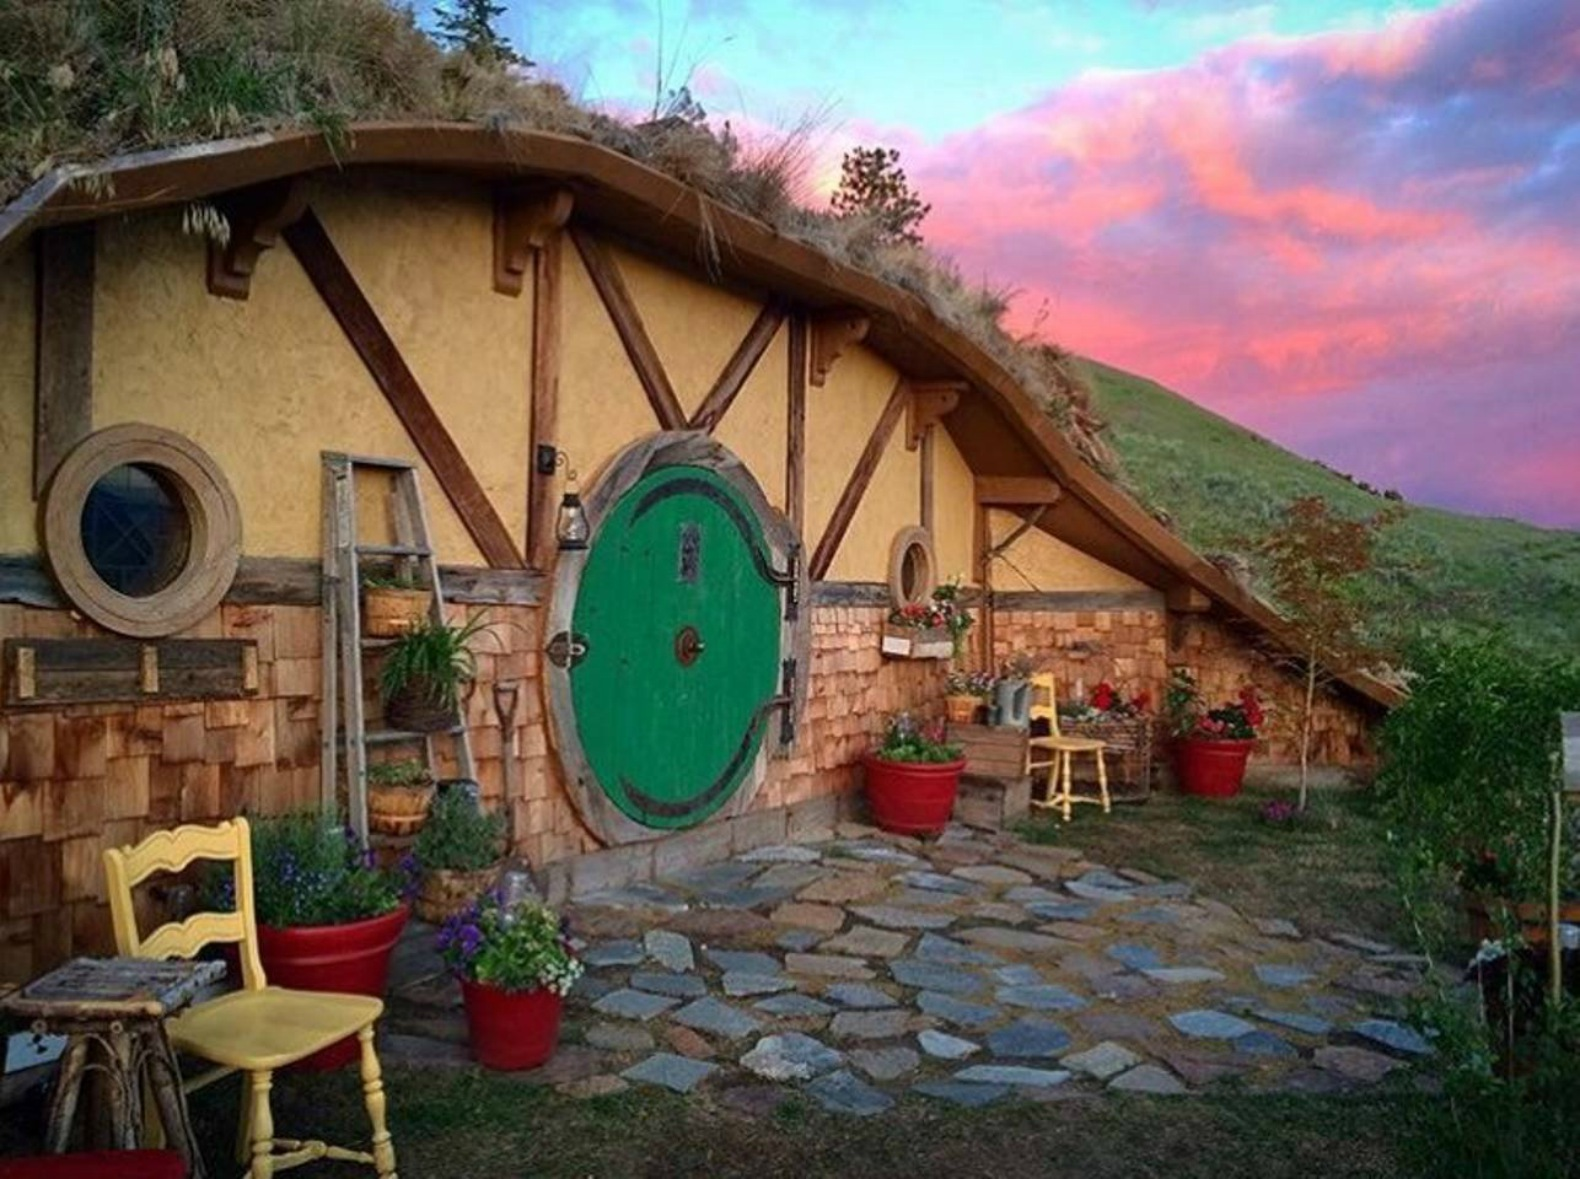 Cartoon Farm 3d Live Wallpaper Spend The Night In This Magical Hobbit House Tucked Into